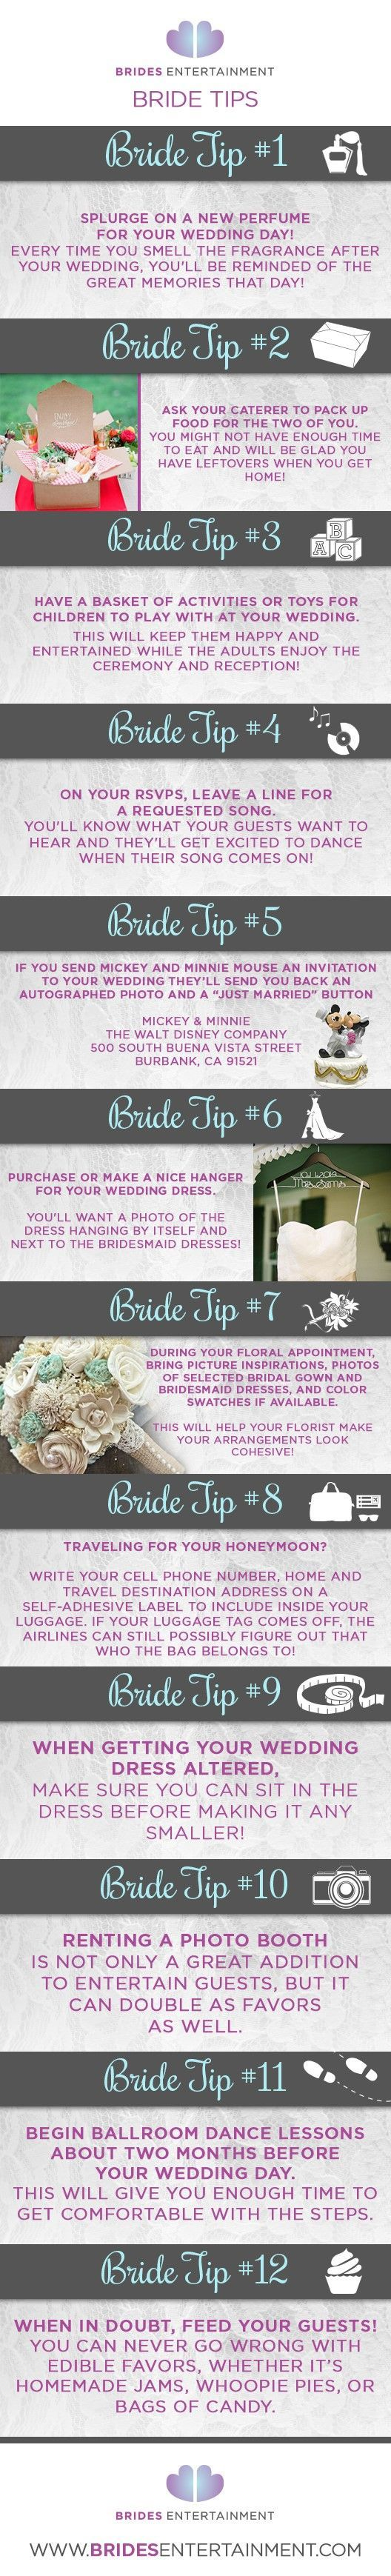 wedding planning tips best photos Nice Weddings and Wedding